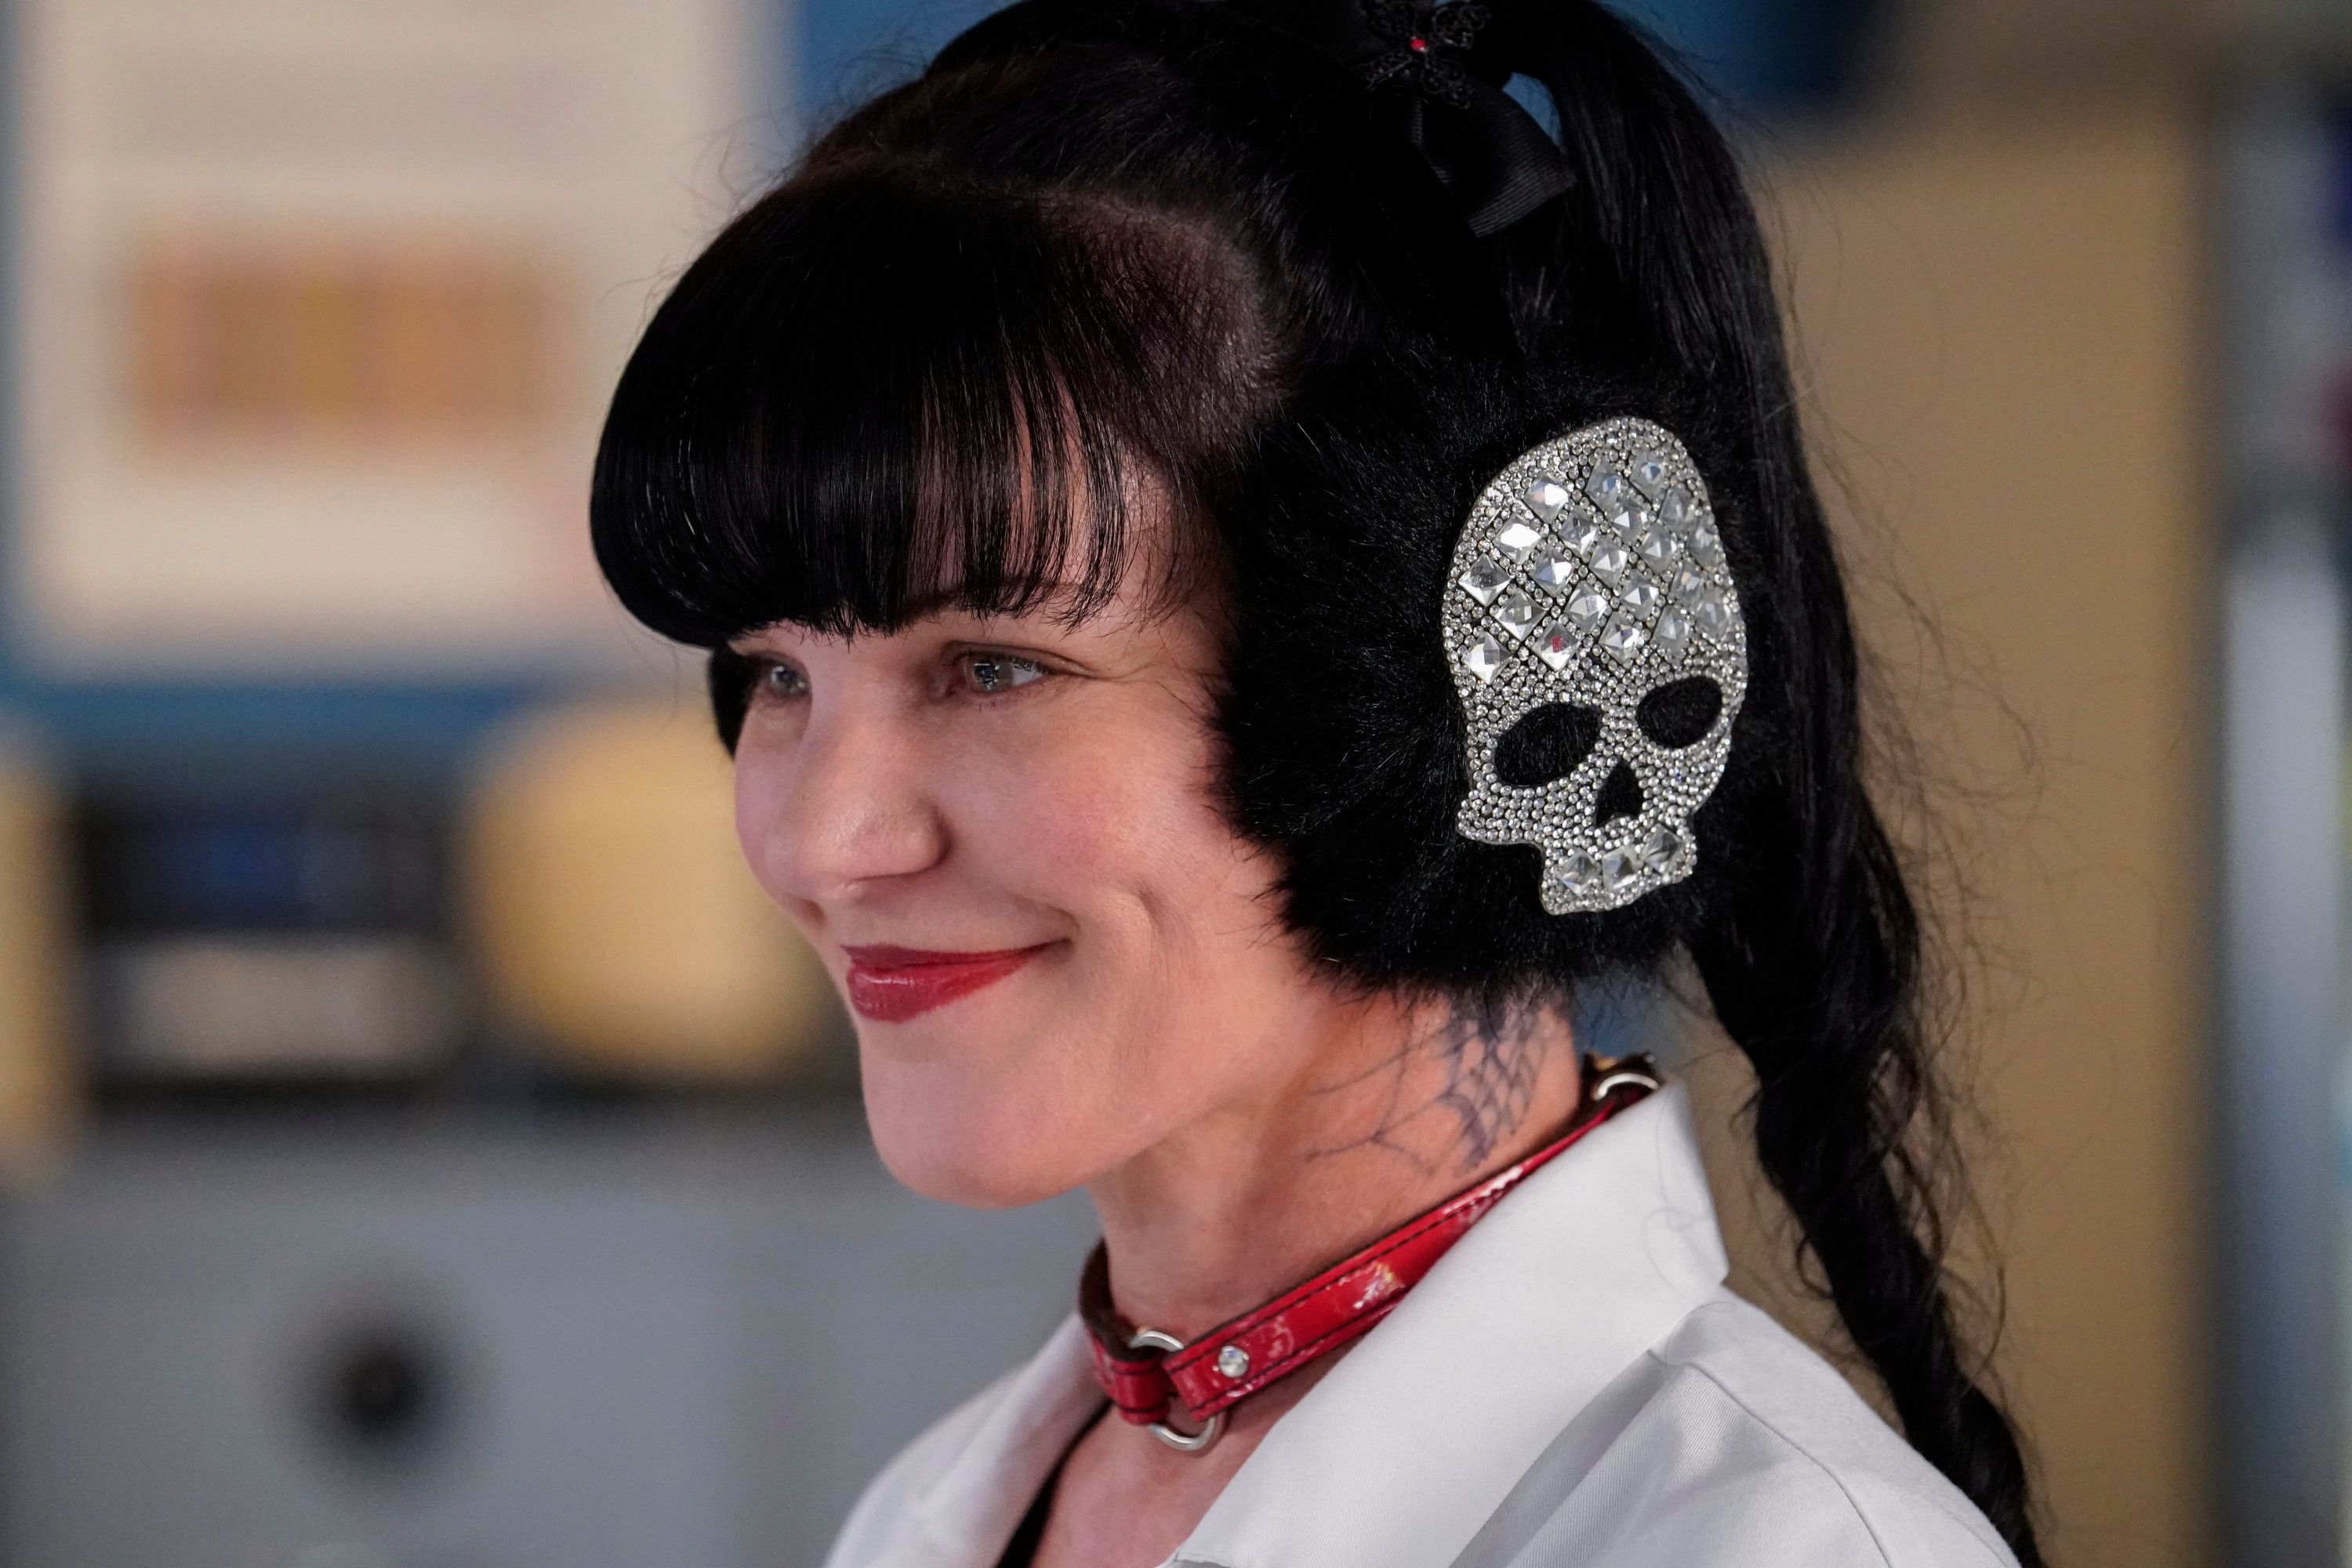 Pauley Perrette Leaves NCIS, Alleges 'Multiple Physical